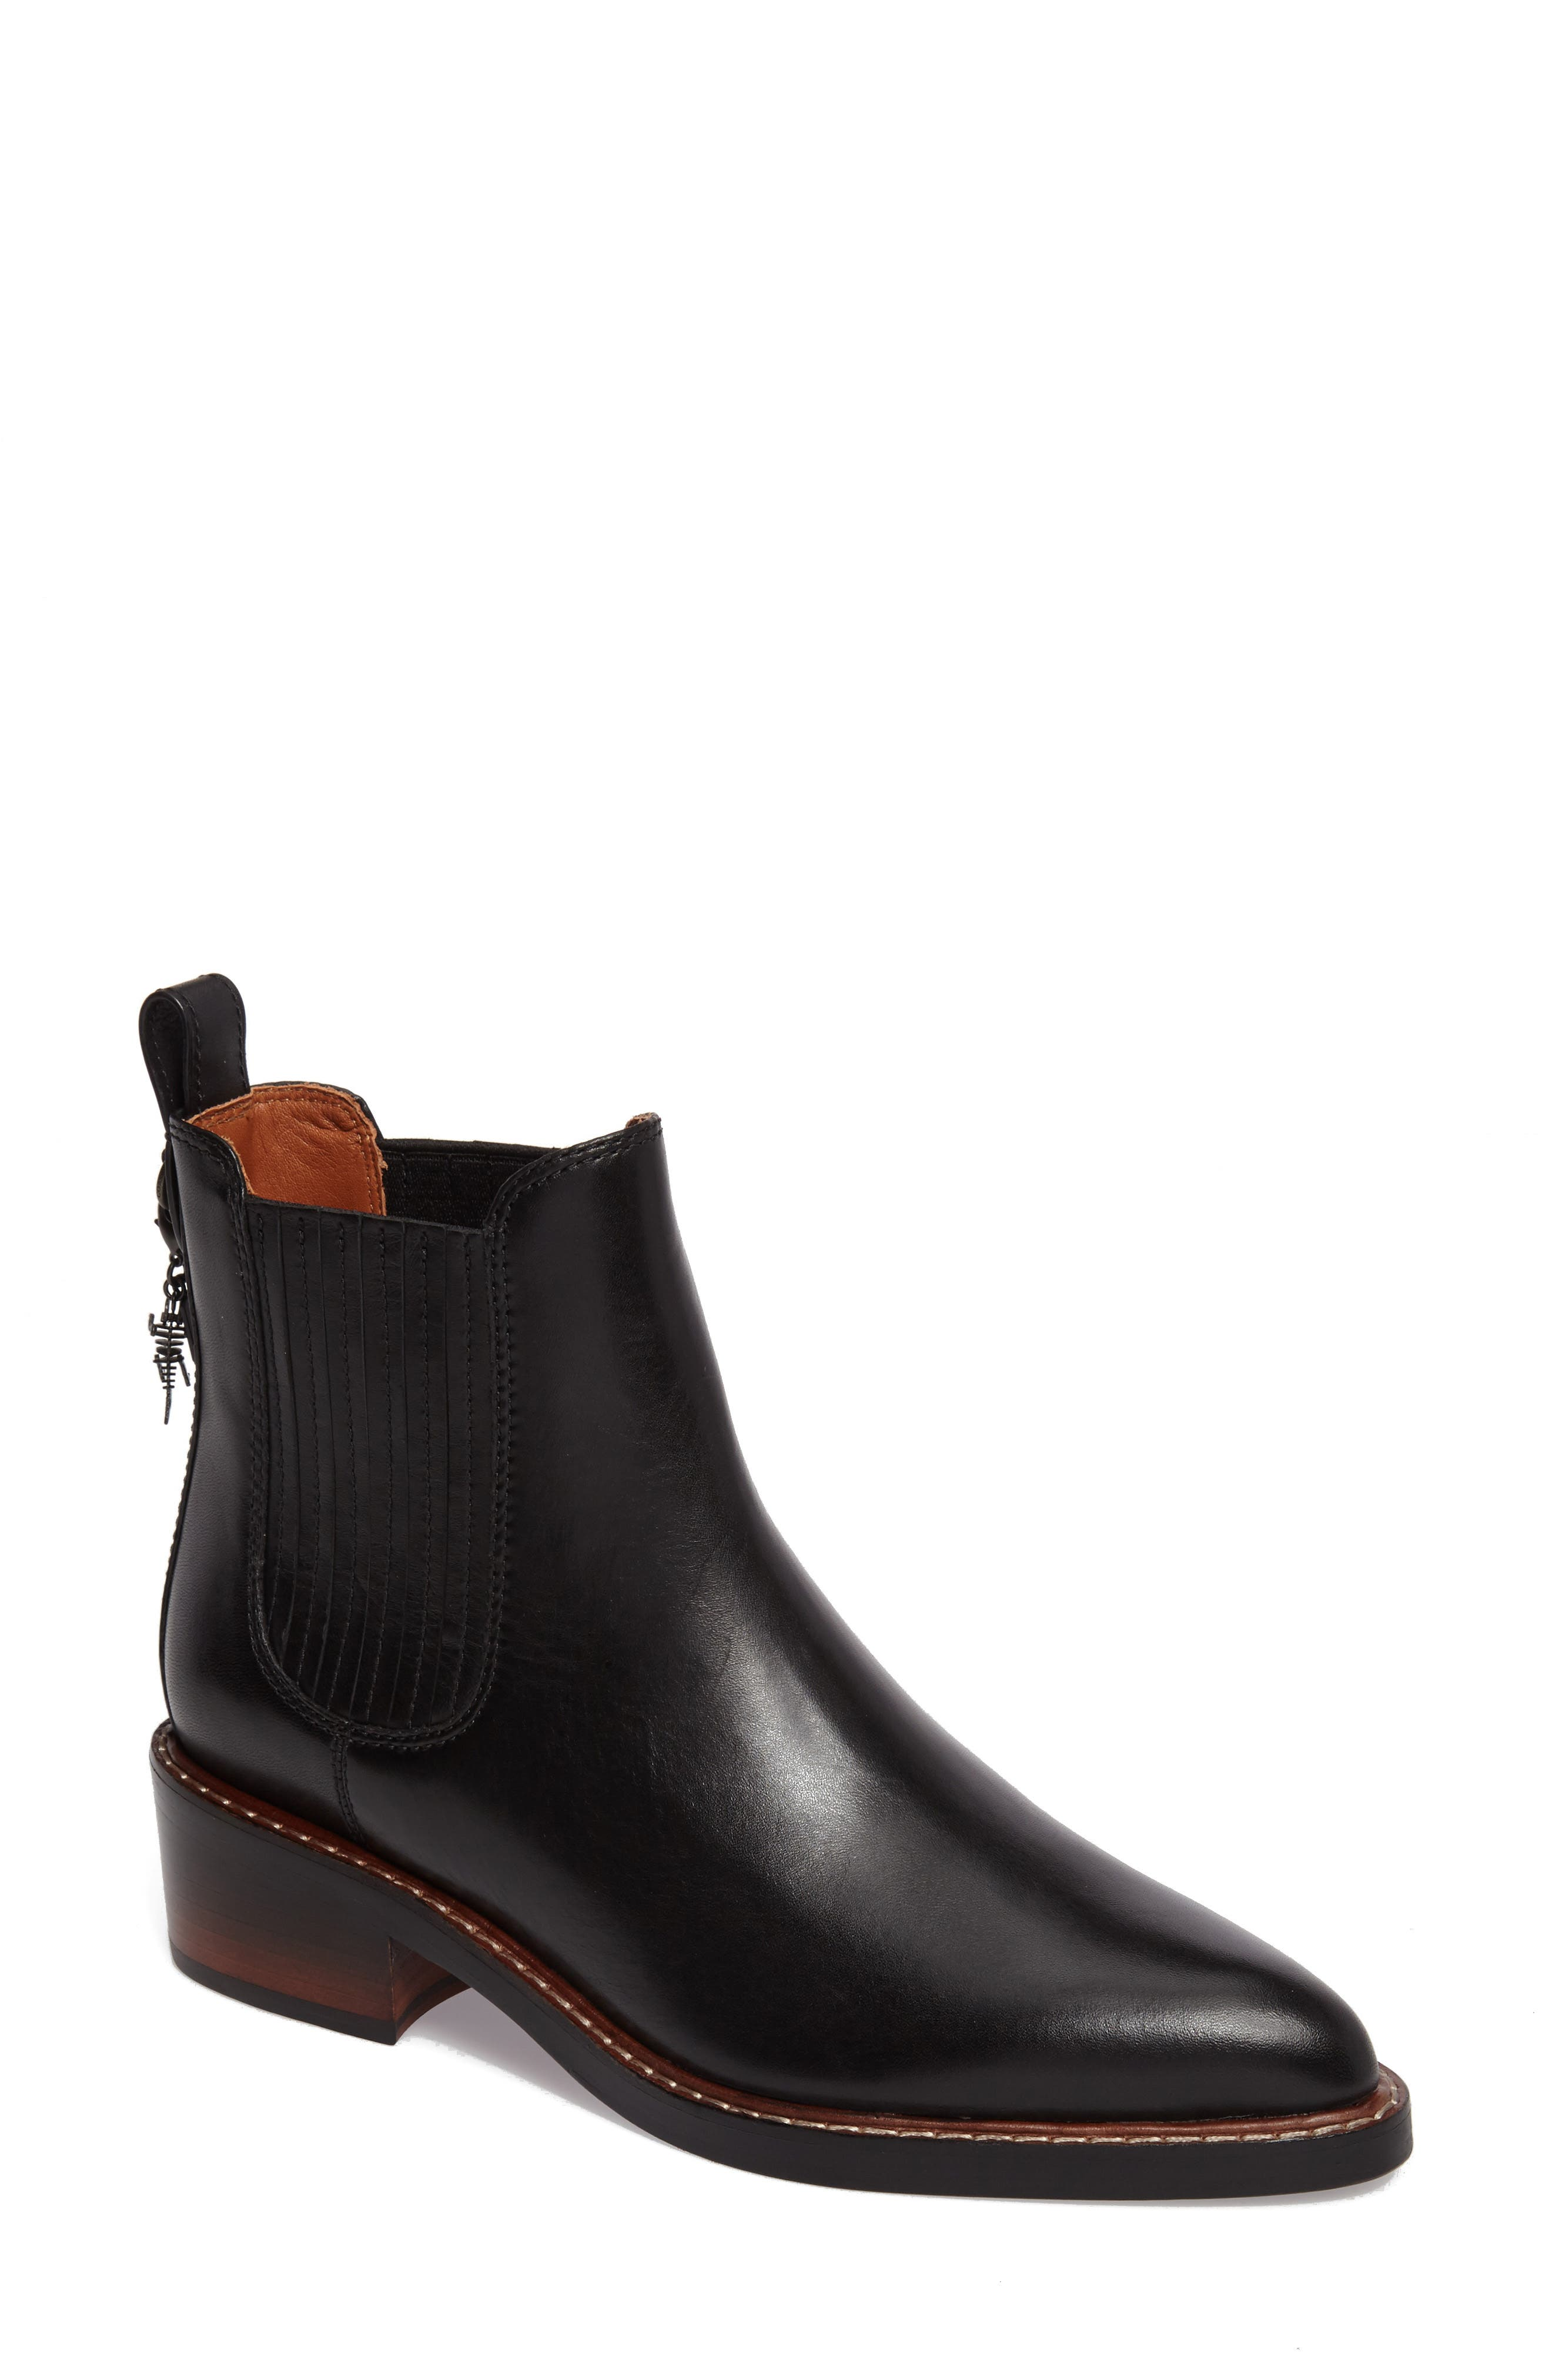 Bowery Embroidered Chelsea Bootie,                         Main,                         color, Black Leather